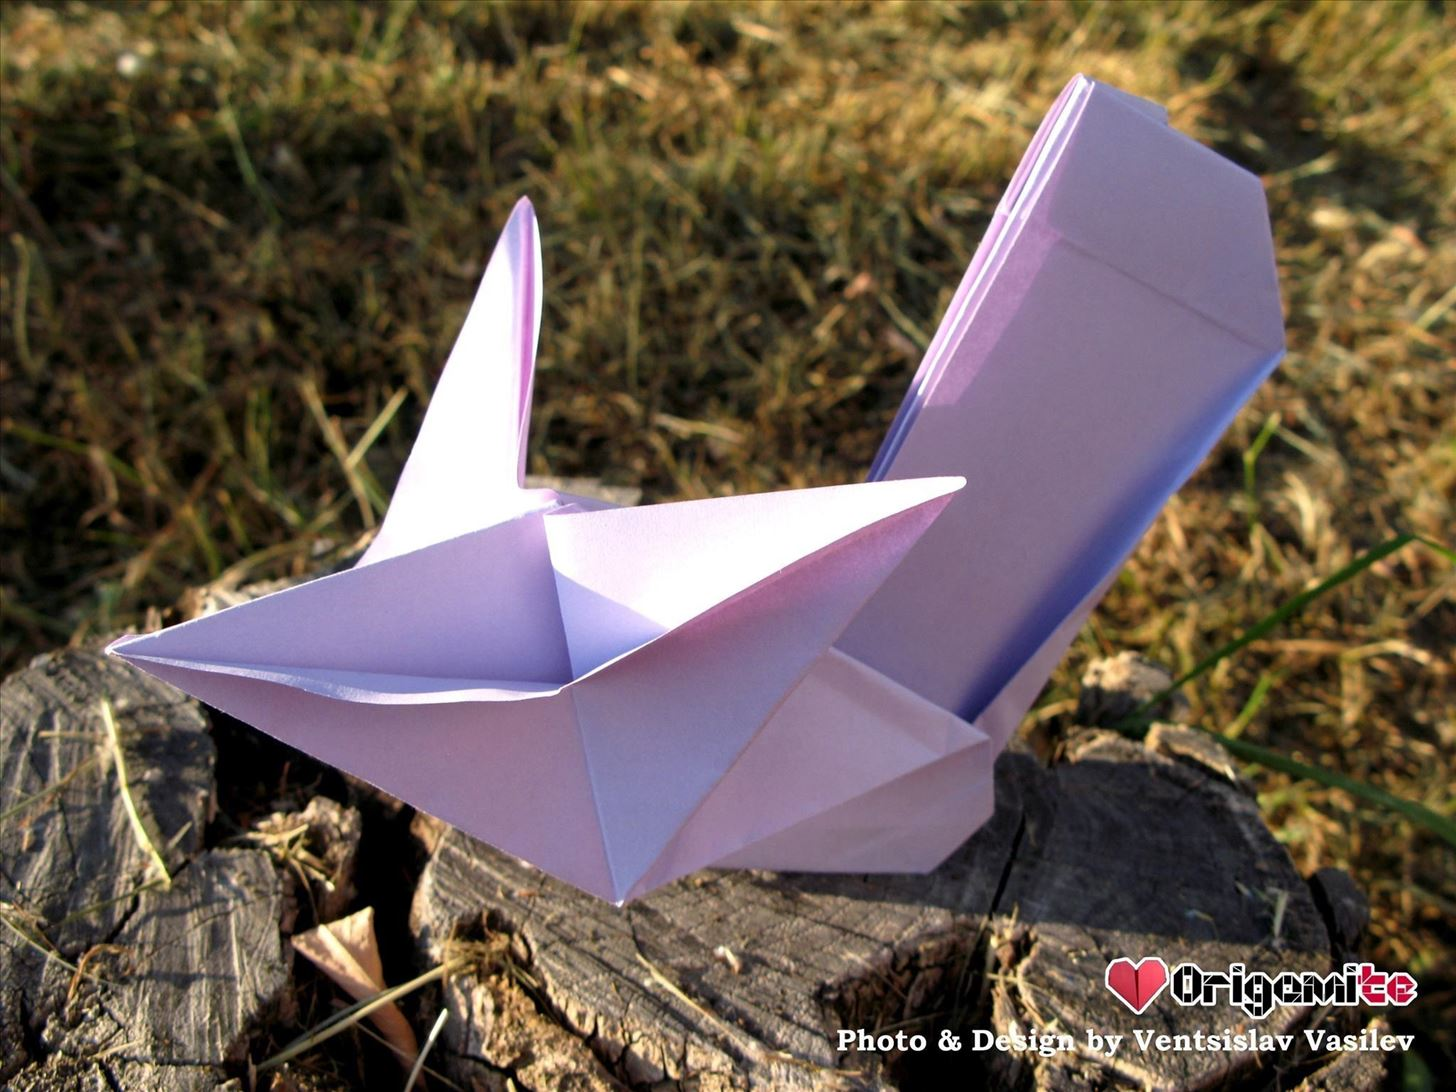 How to Make an Origami Squirrel